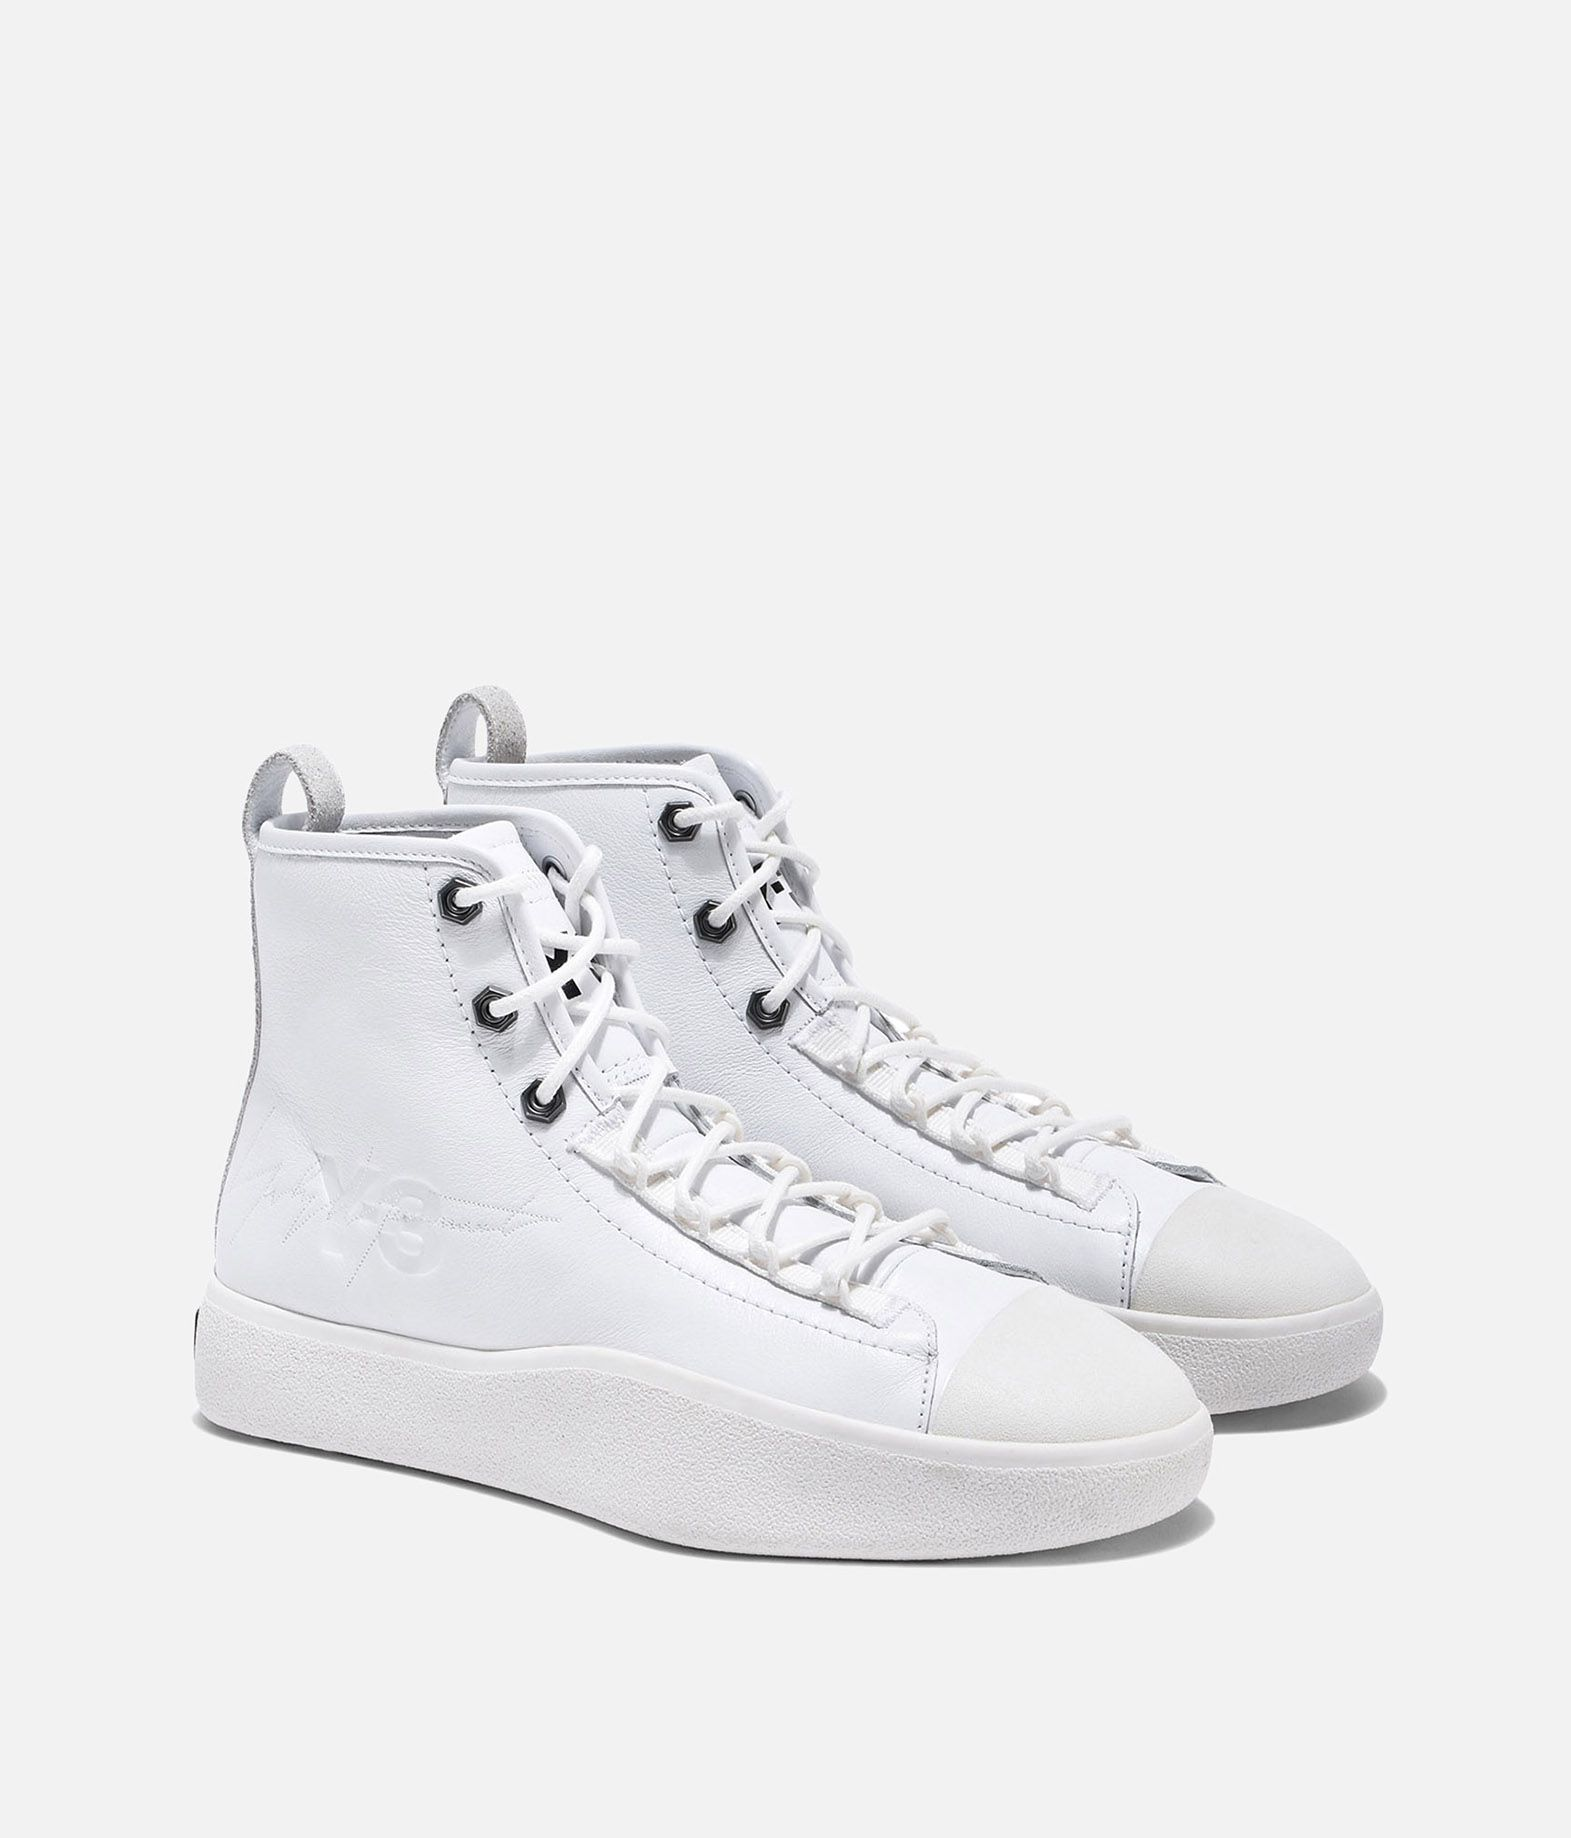 1c9409de6dc92 ... Y-3 Y-3 Bashyo II High-top sneakers E r ...